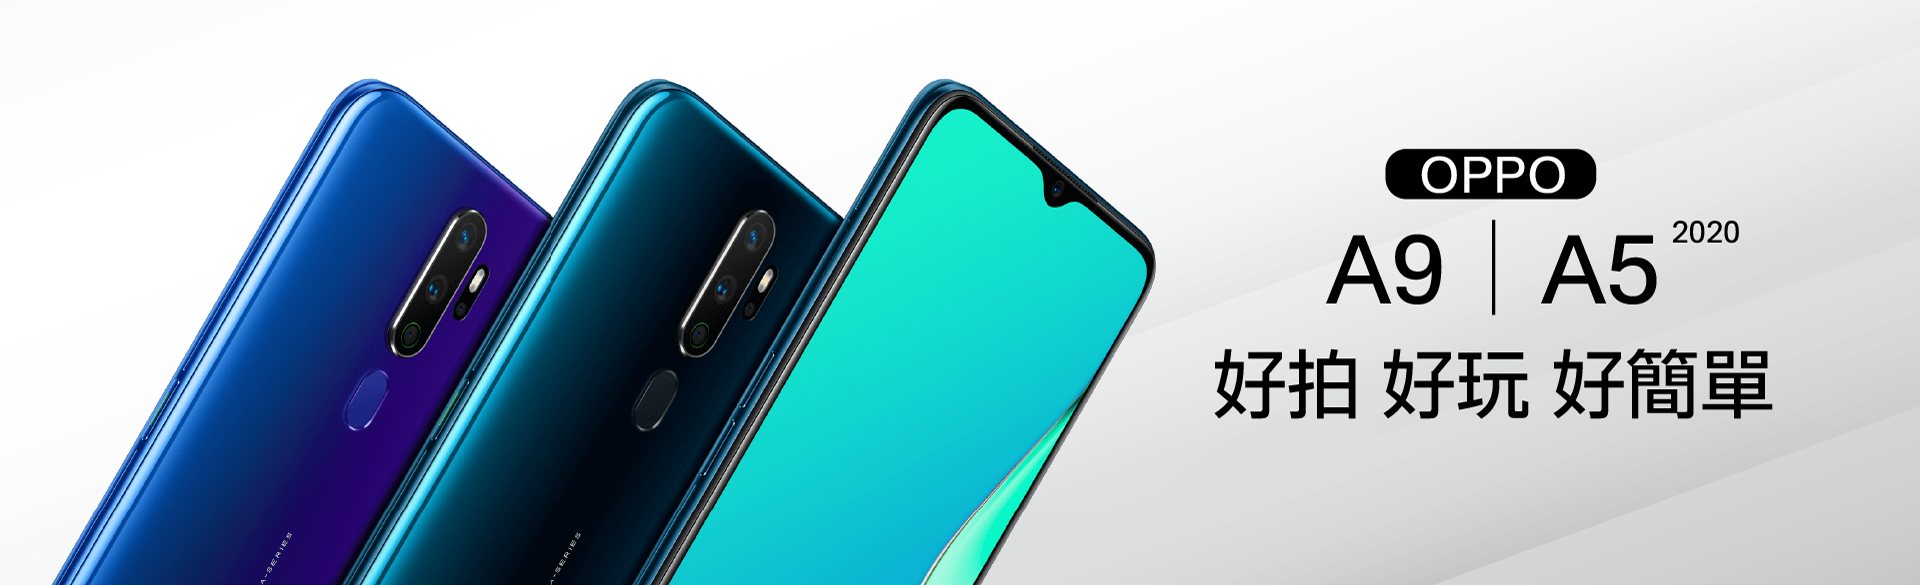 OPPO A5/A9 2020